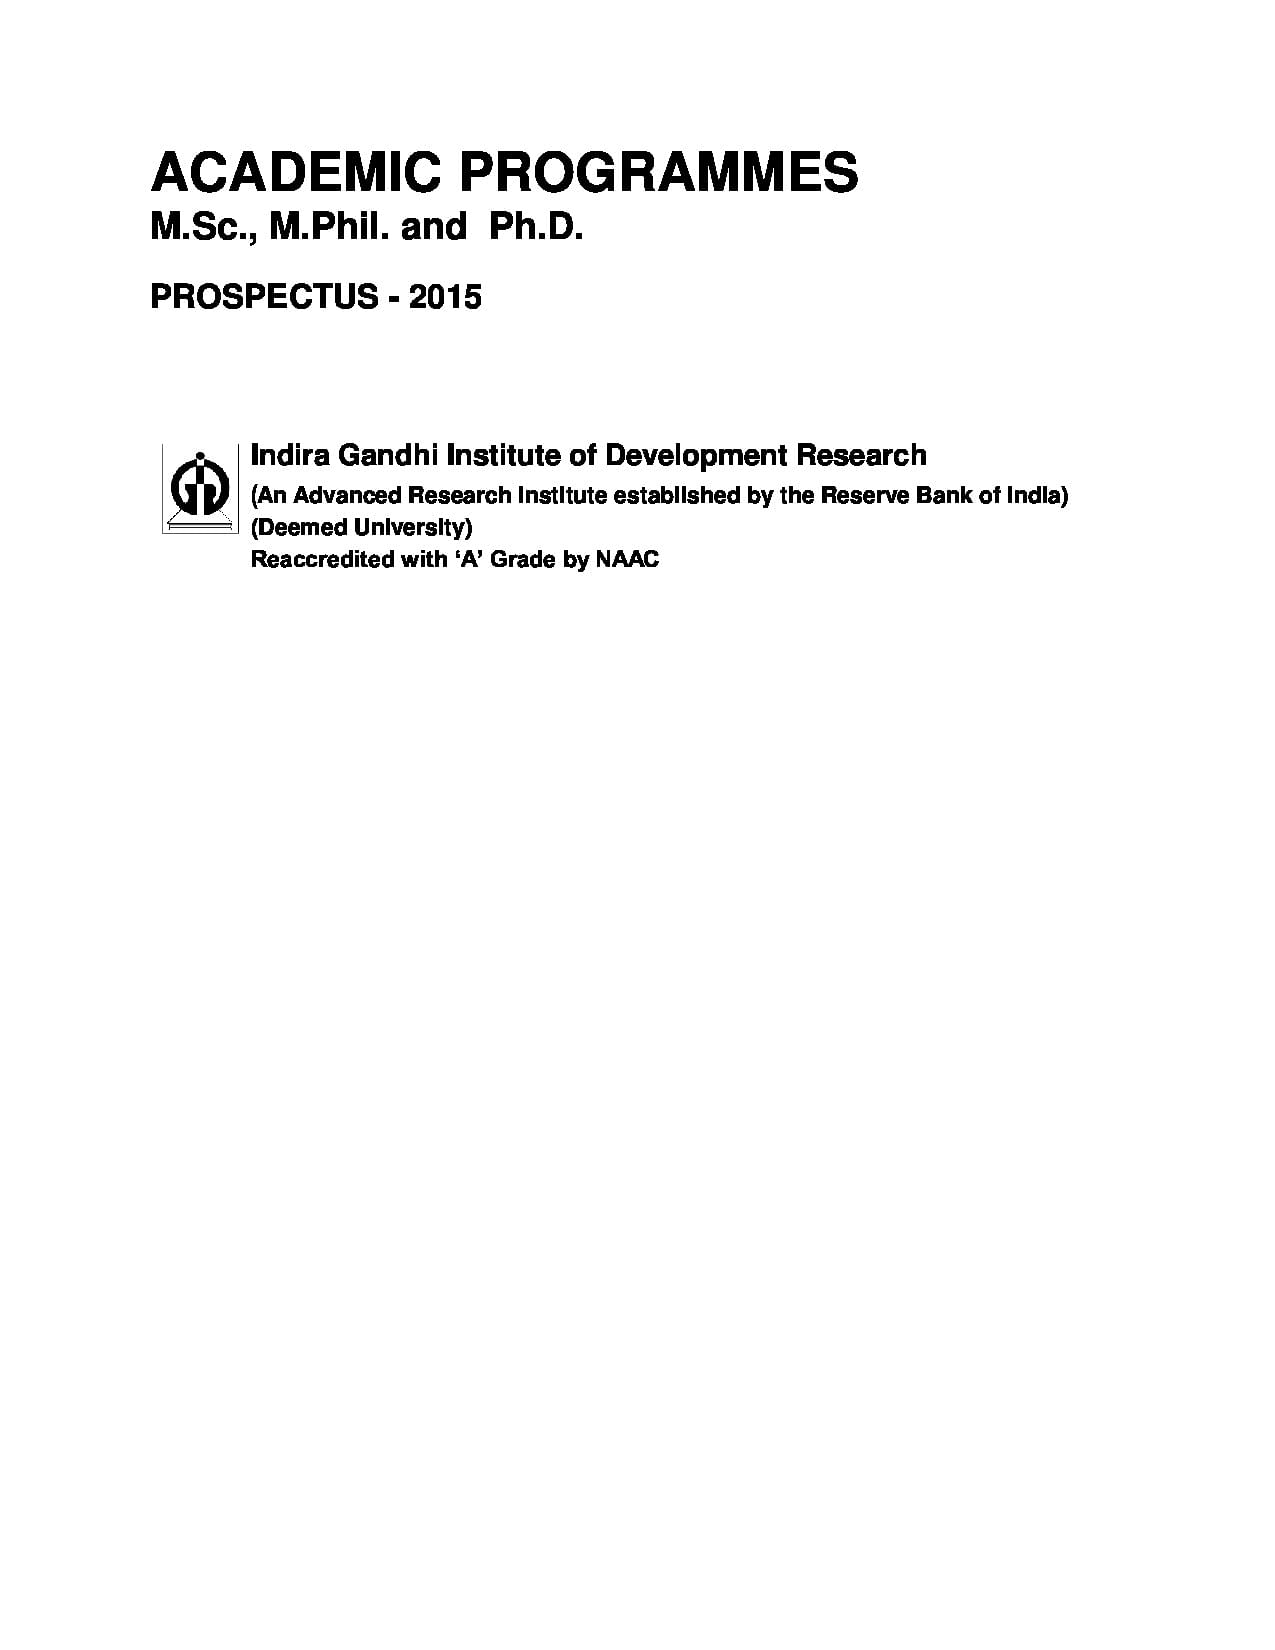 indira gandhi research paper Indira gandhi institute of development research about us synergy between research and teaching call for papers :.